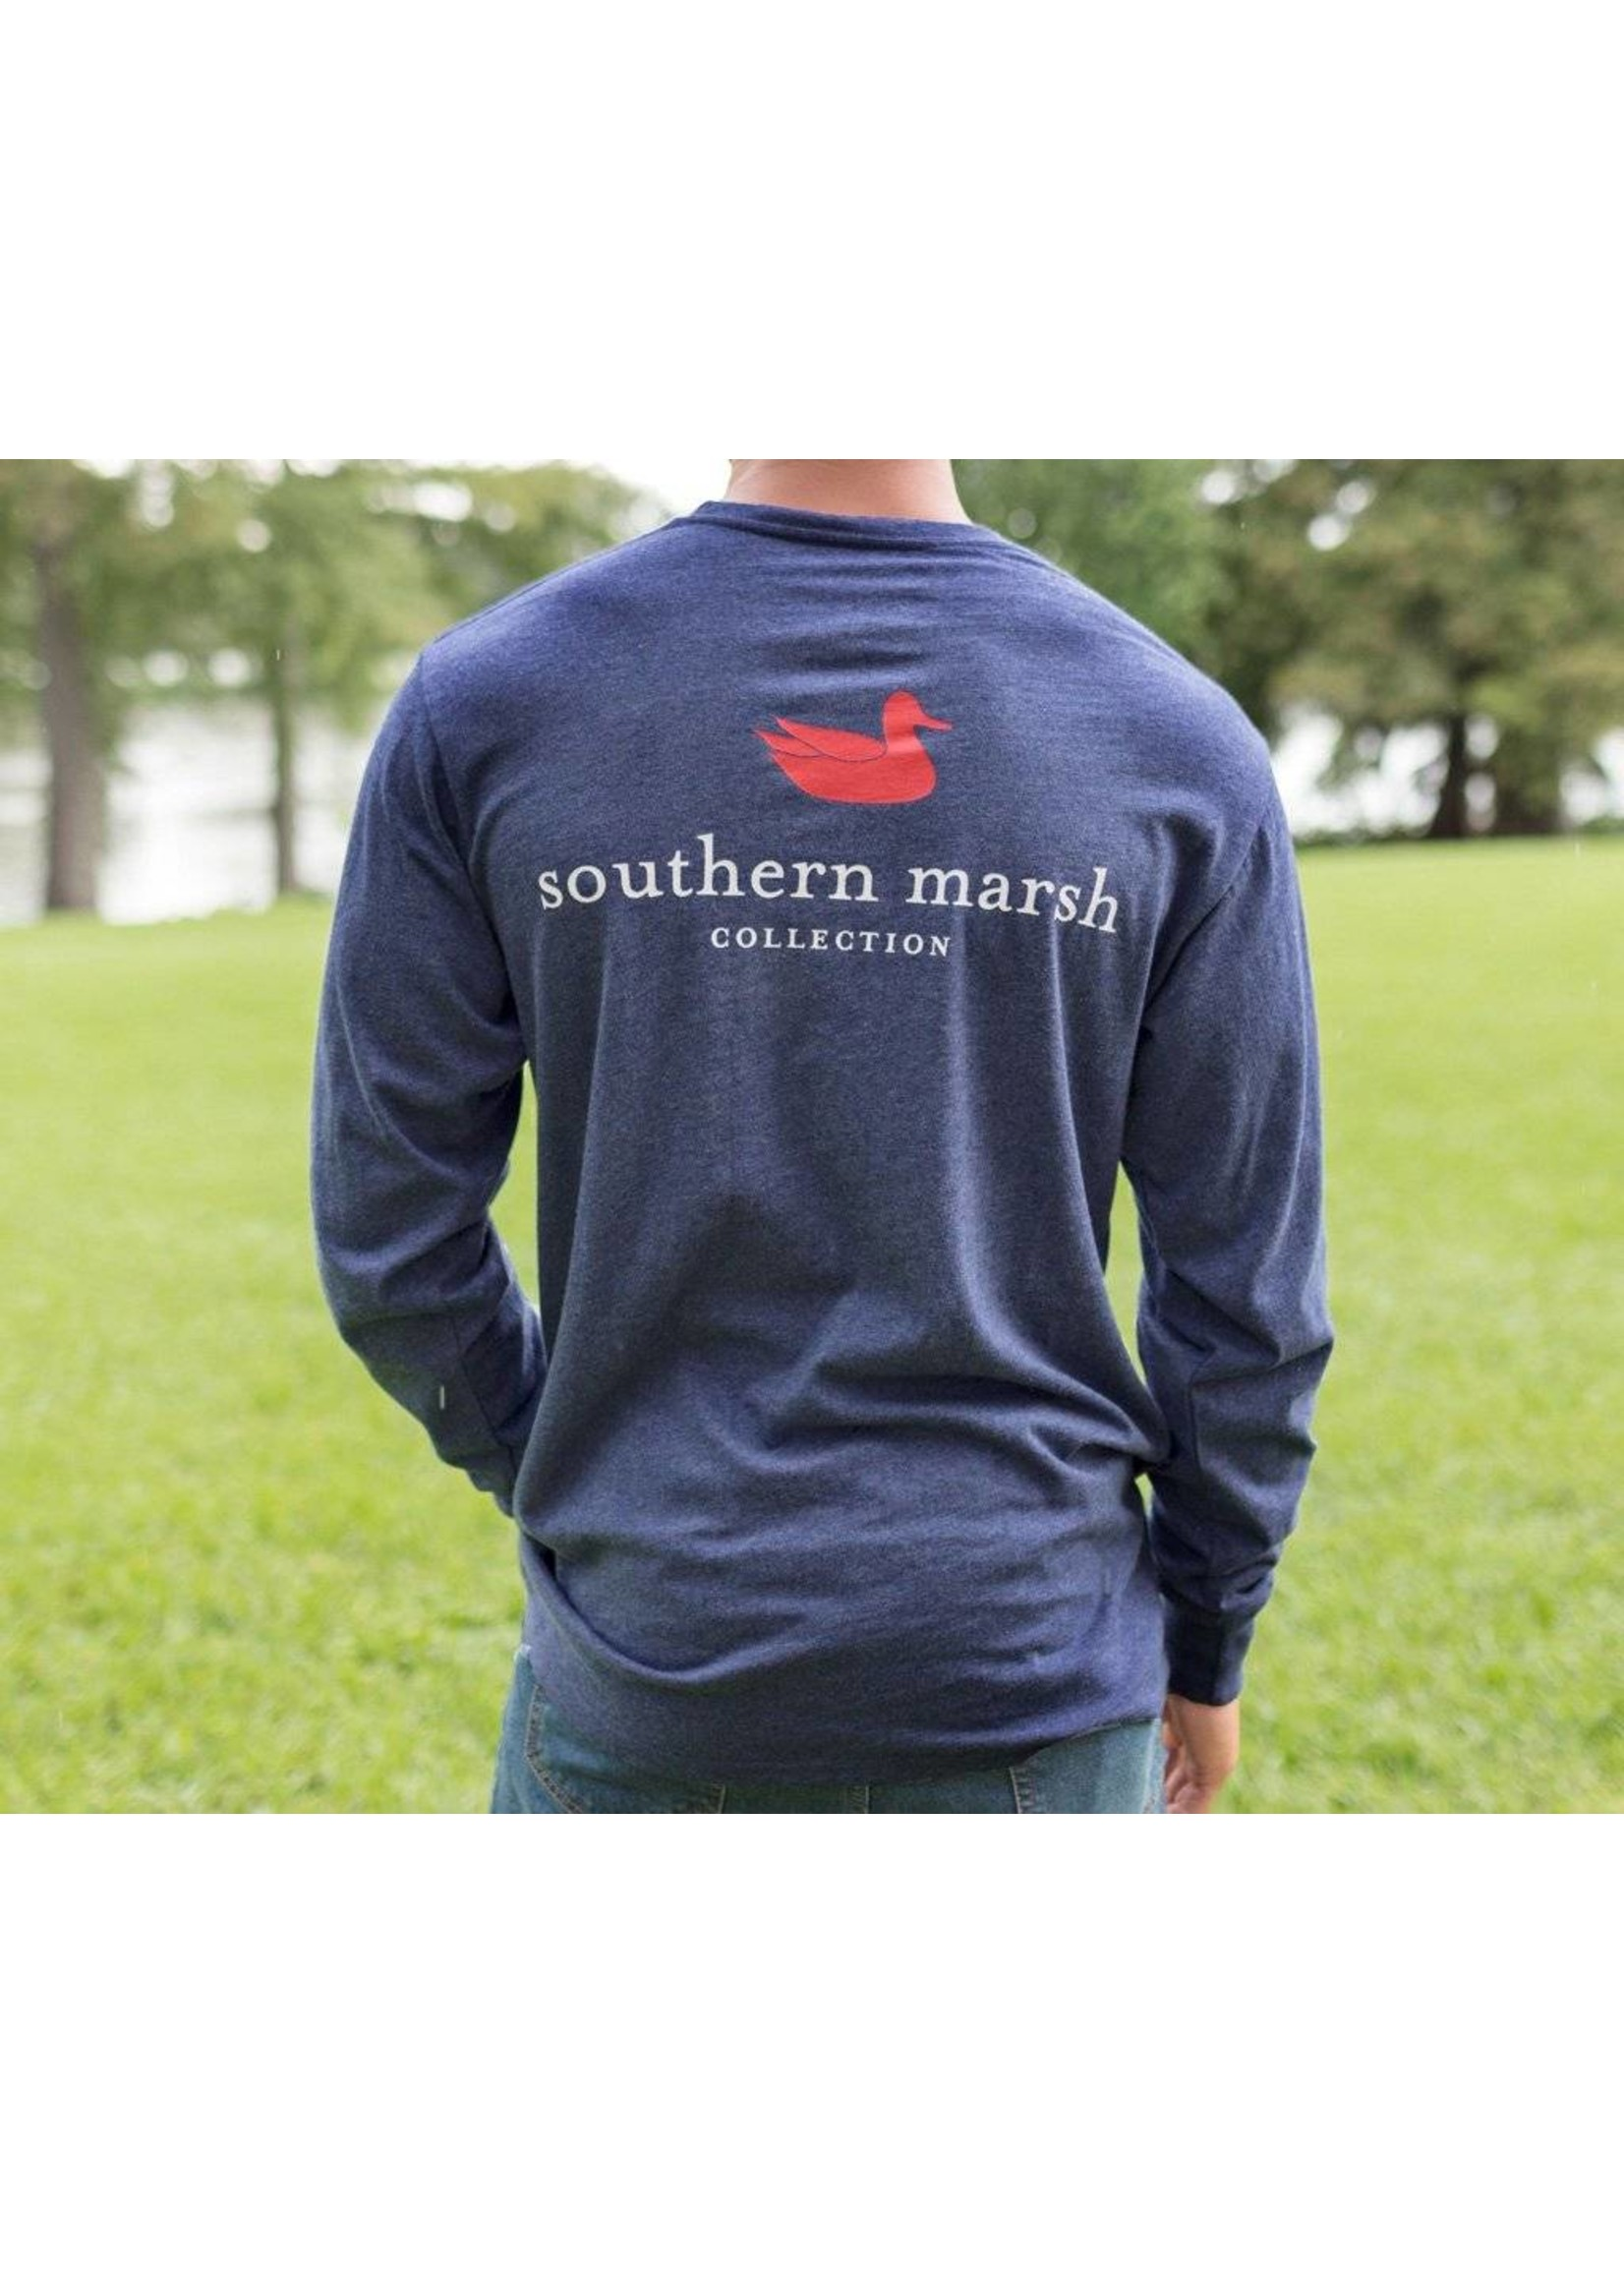 Southern Marsh Southern Marsh  Authentic Tee - Heather - Long Sleeve